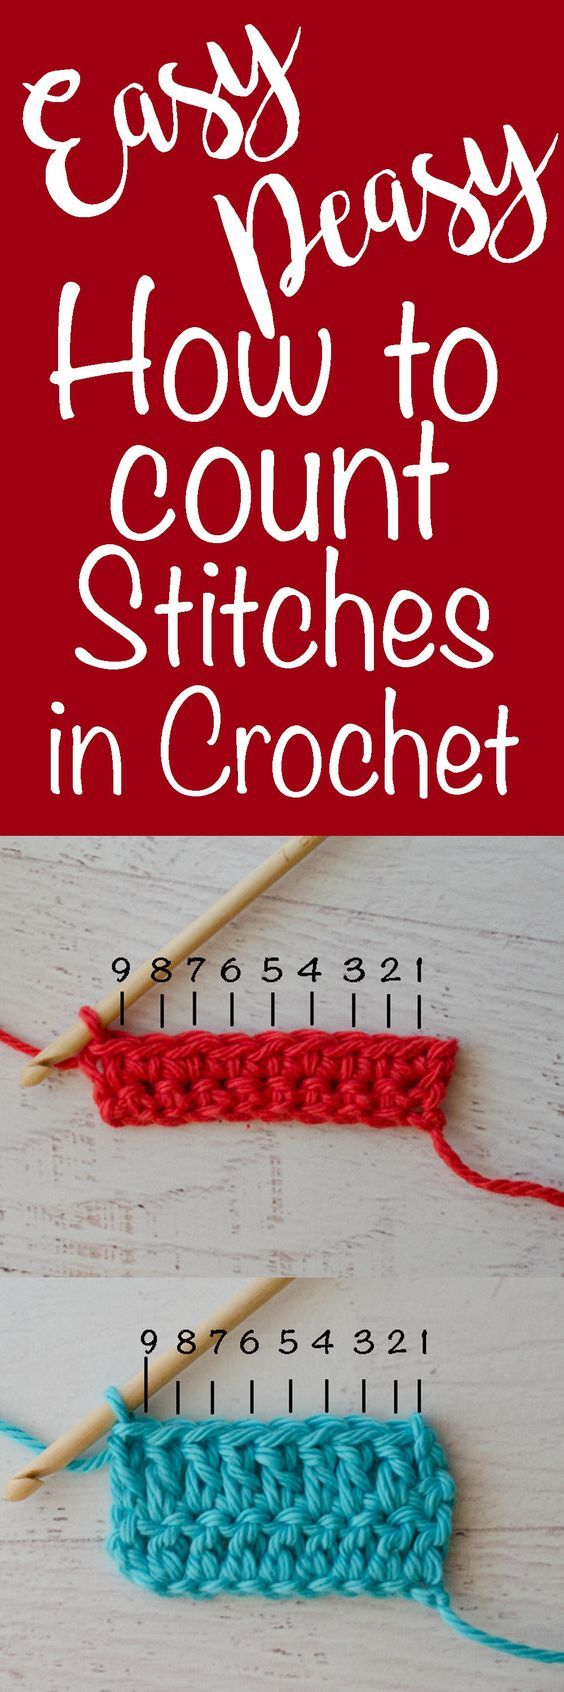 How To Count Stitches In Crochet Tutorial – (crochet365knittoo)